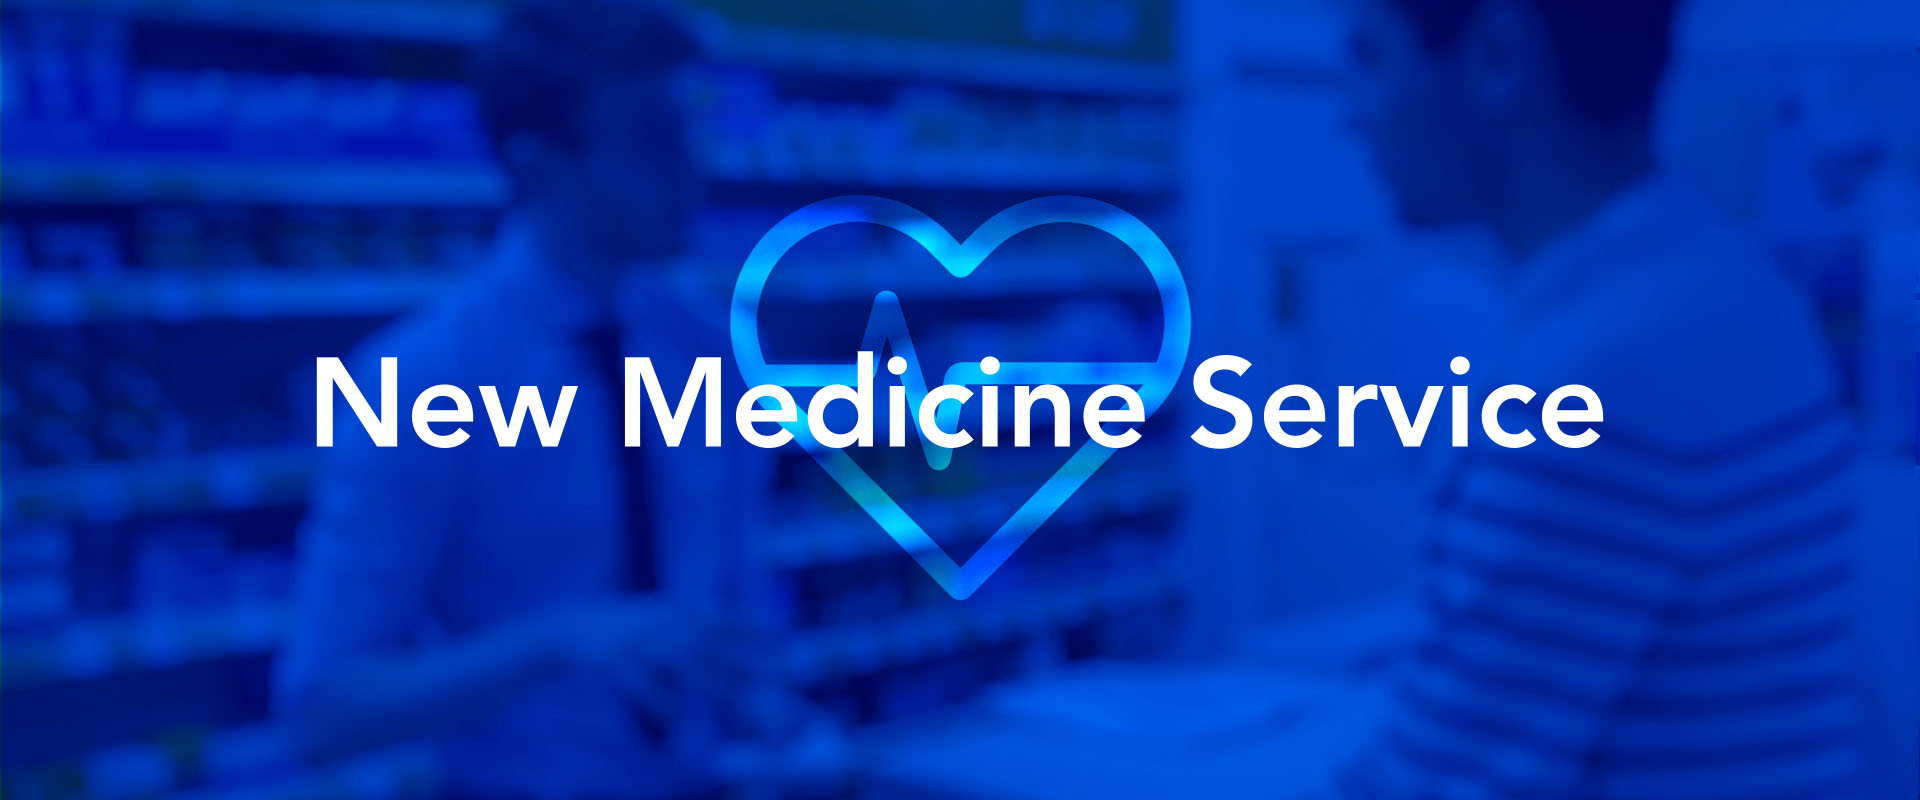 new medicine service nhs tesco pharmacies explainer video thumbnail